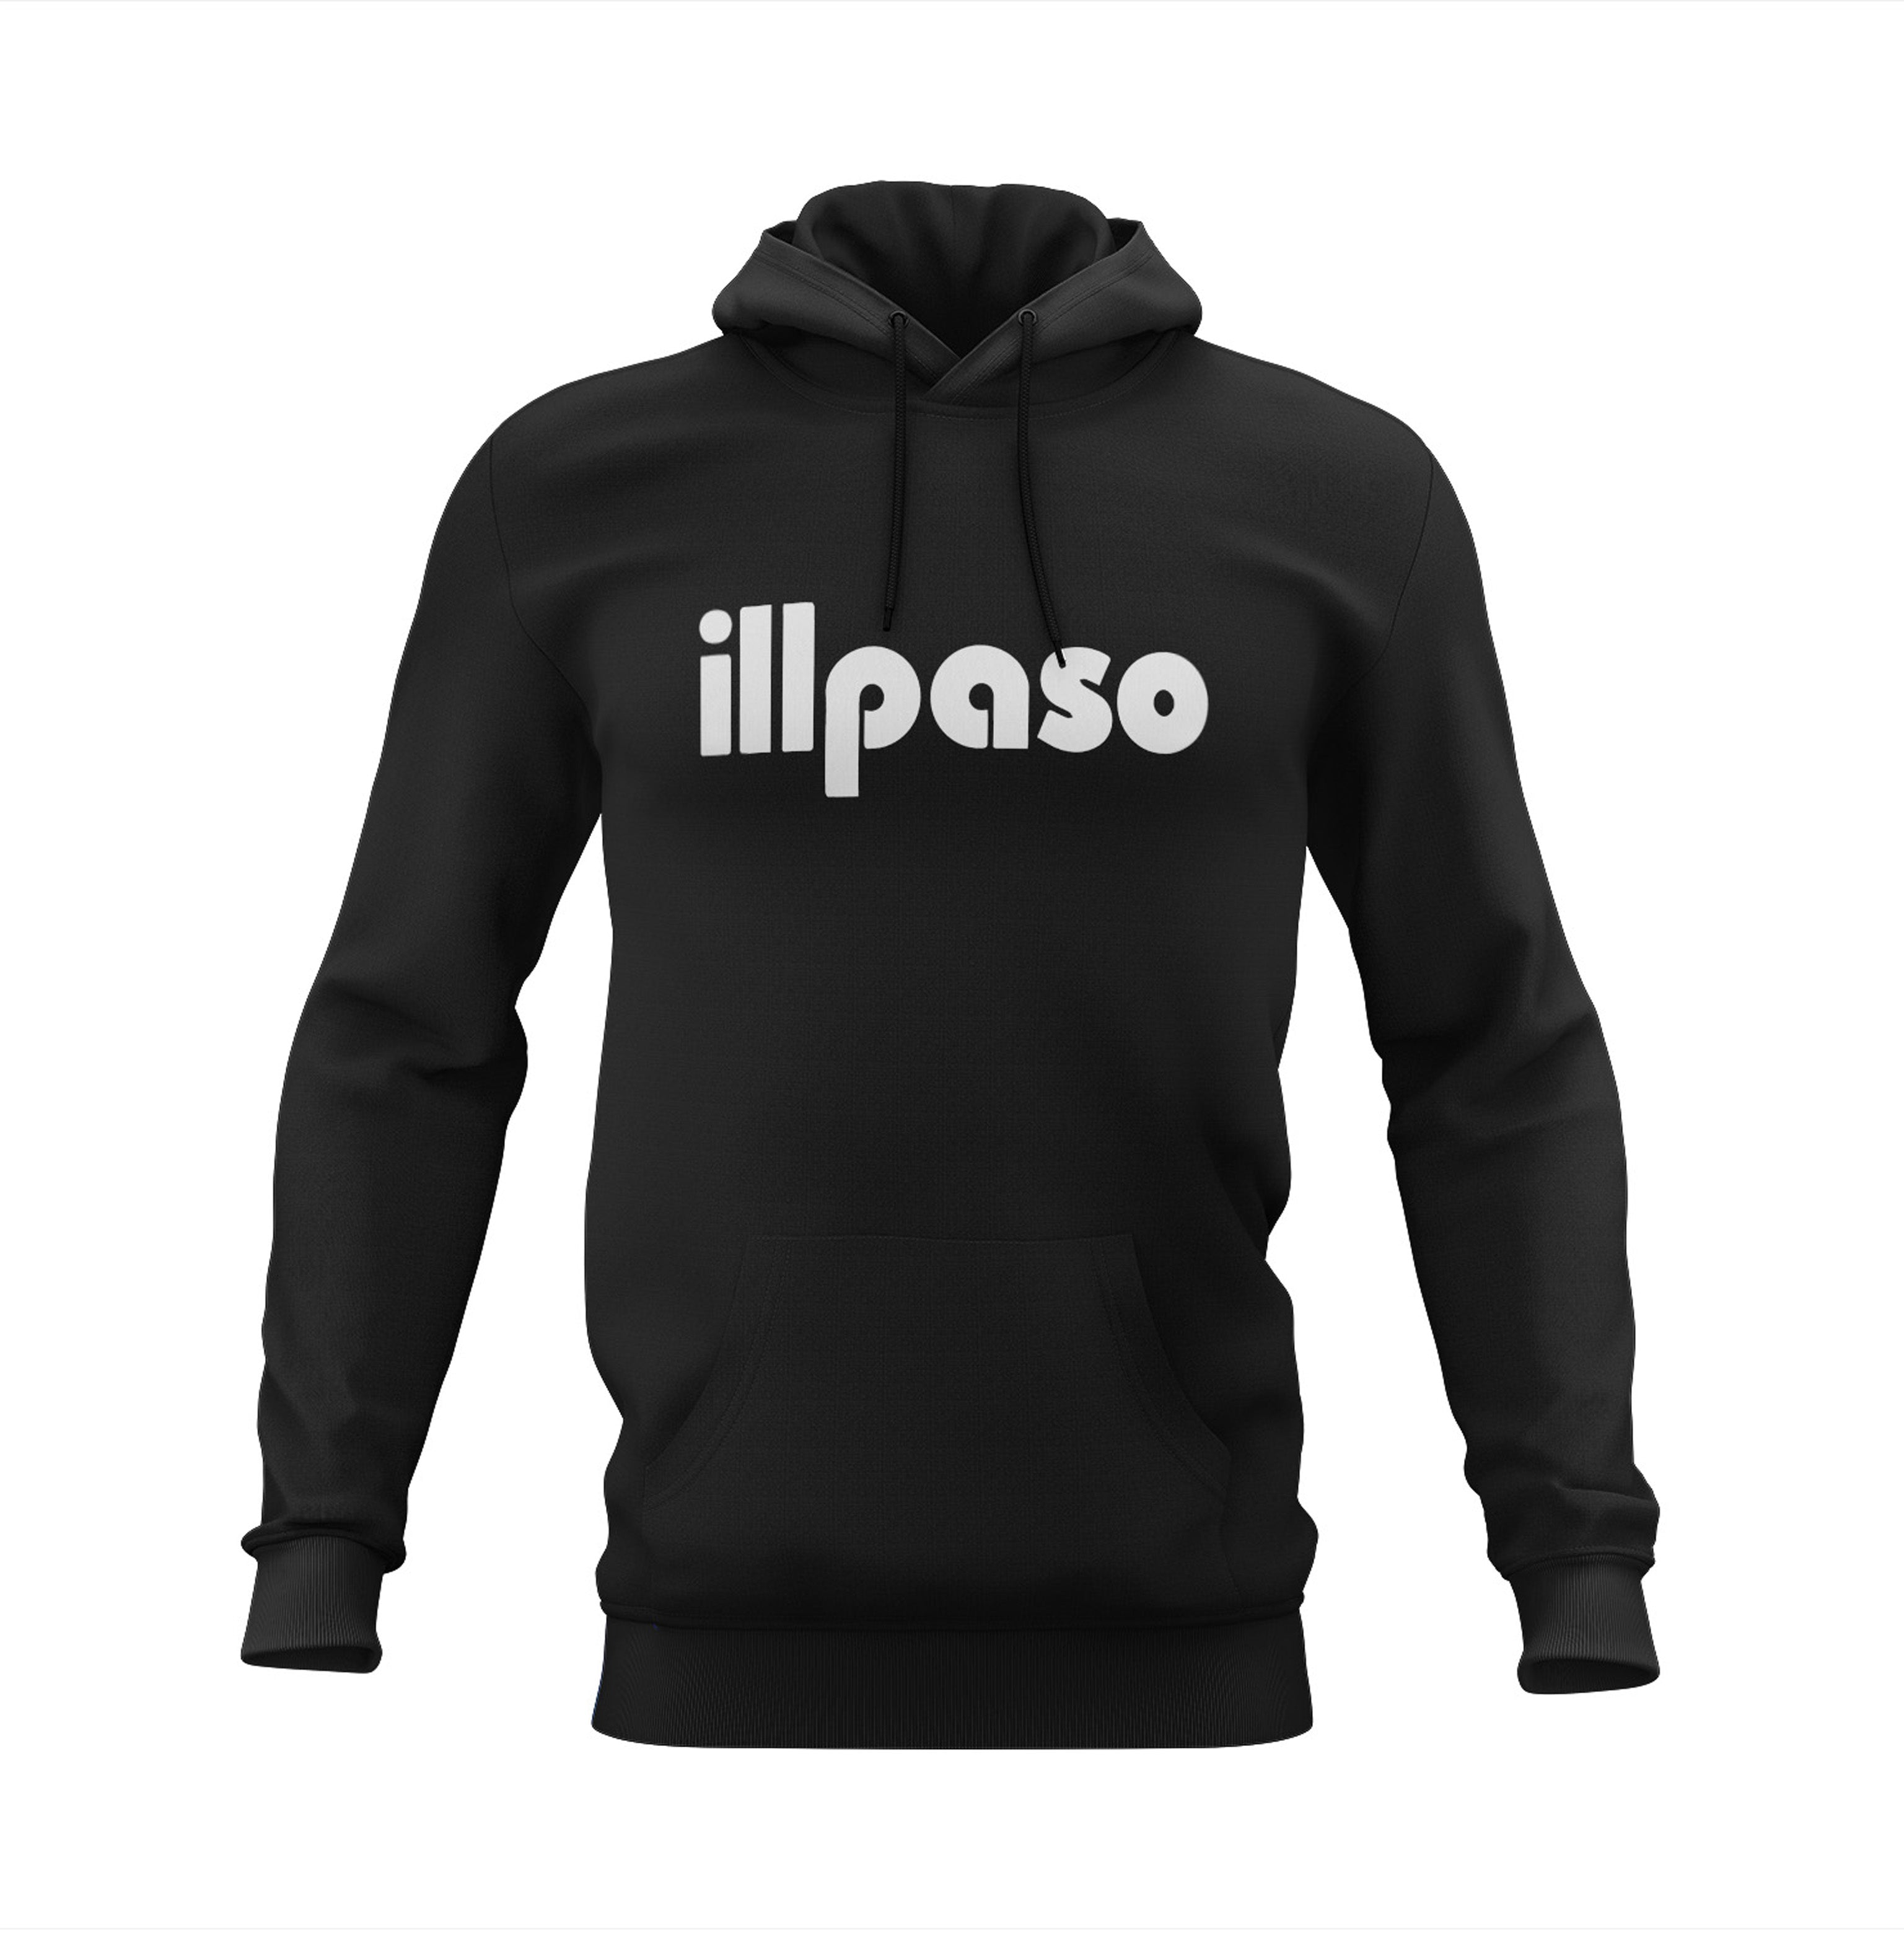 """Diablo Tribute"" Unisex Pullover Hoodie (Black) by illpaso"